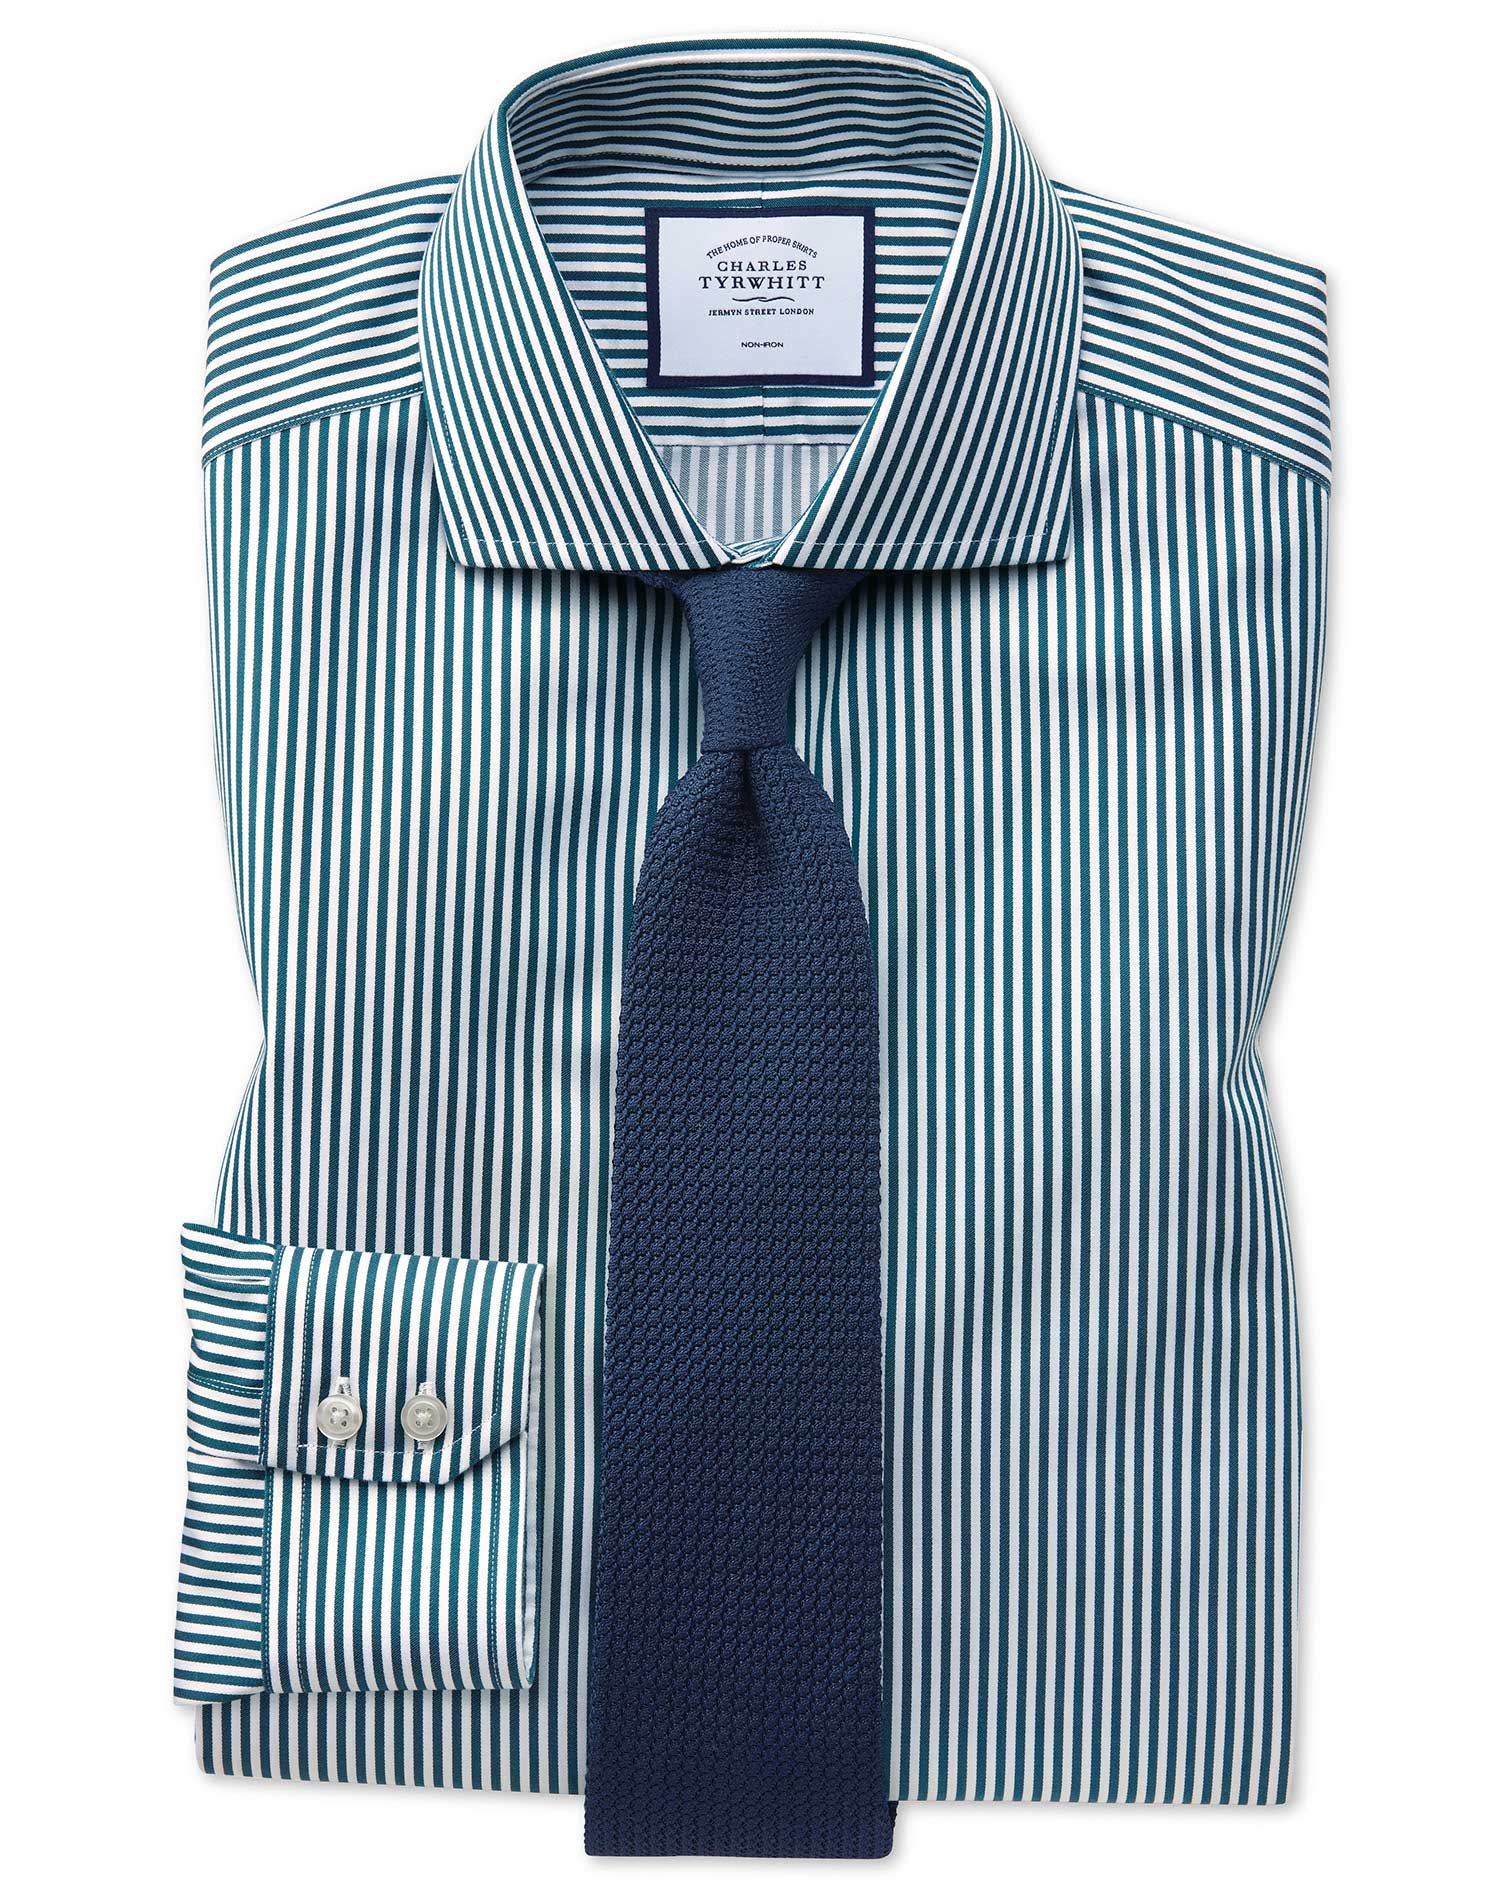 Extra Slim Fit Non-Iron Cutaway Collar Teal Twill Stripe Cotton Formal Shirt Single Cuff Size 15.5/3